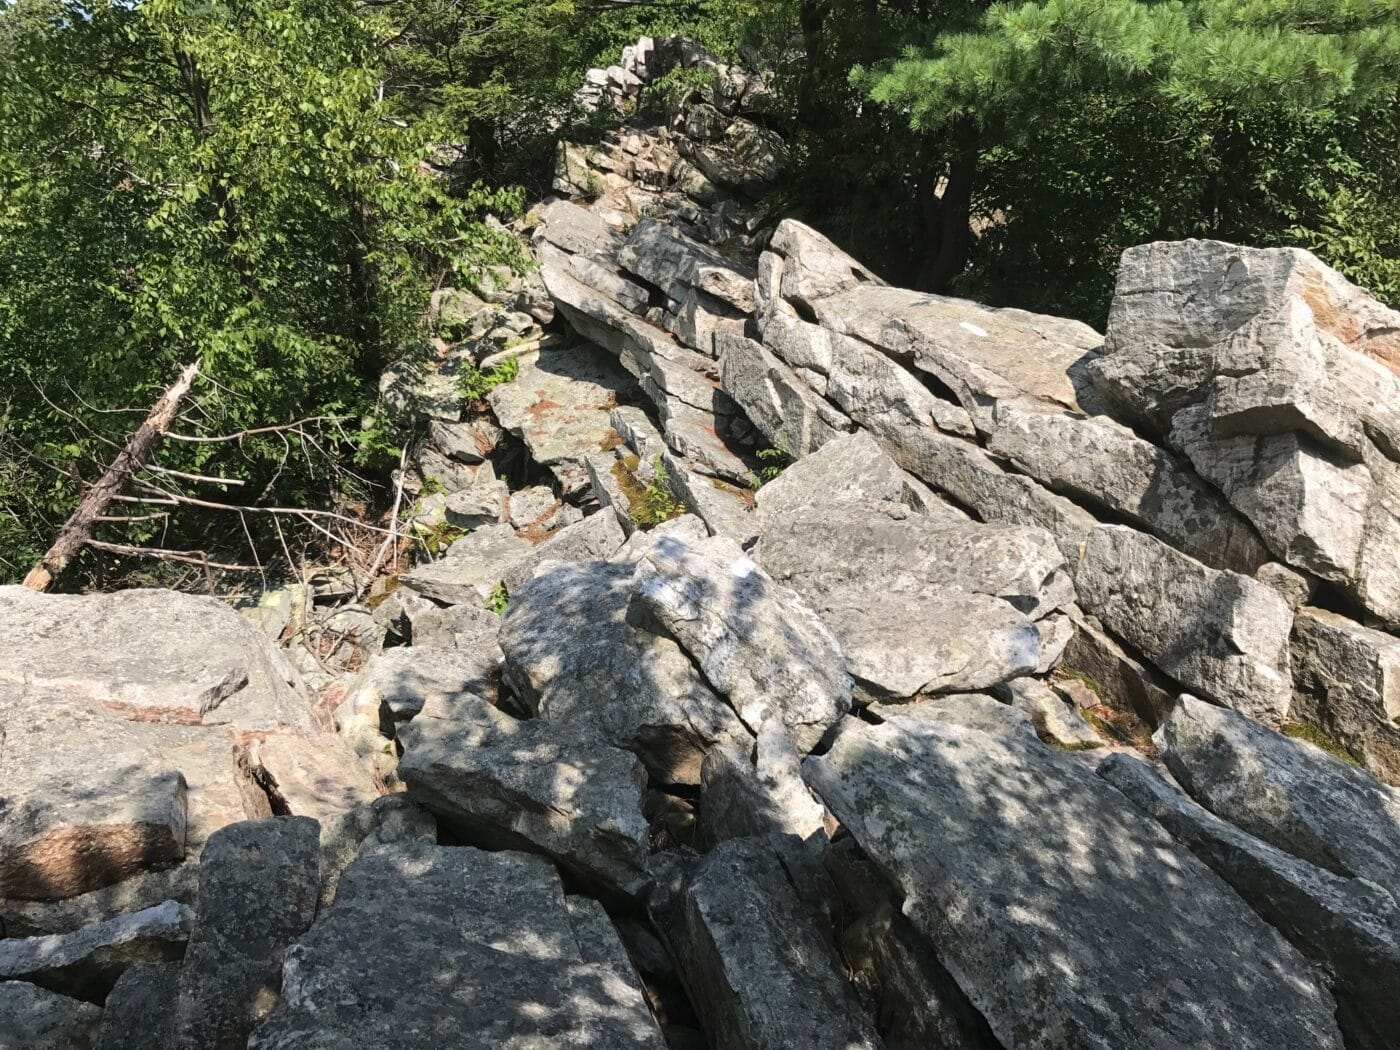 Are you thinking about thru-hiking hiking the Appalachian Trail? Here are 5 things to know before planning an Appalachian Trail thru-hike from Springer Moutain to Katahdin